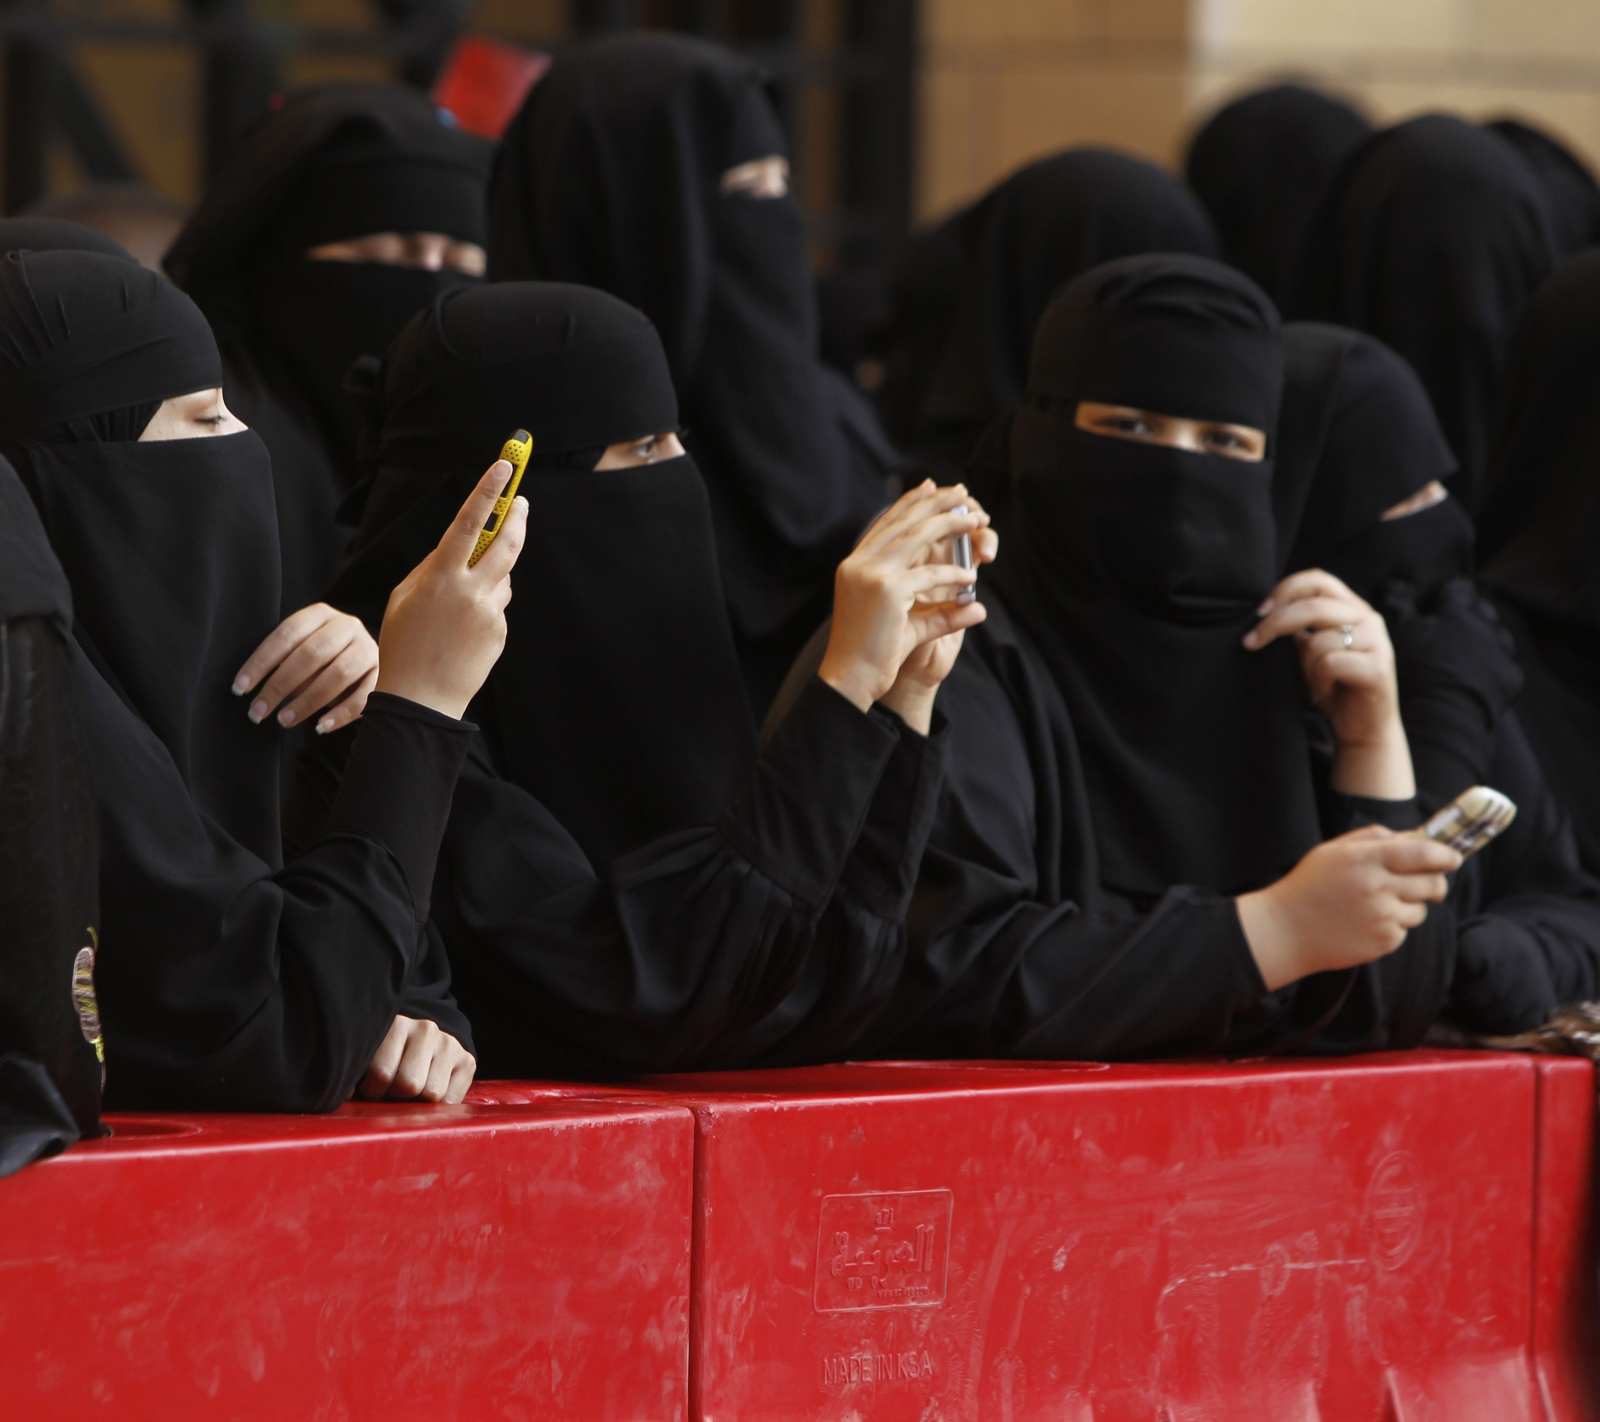 Saudi women launch social media campaign with over 170,000 Tweets demanding end of male guardianship